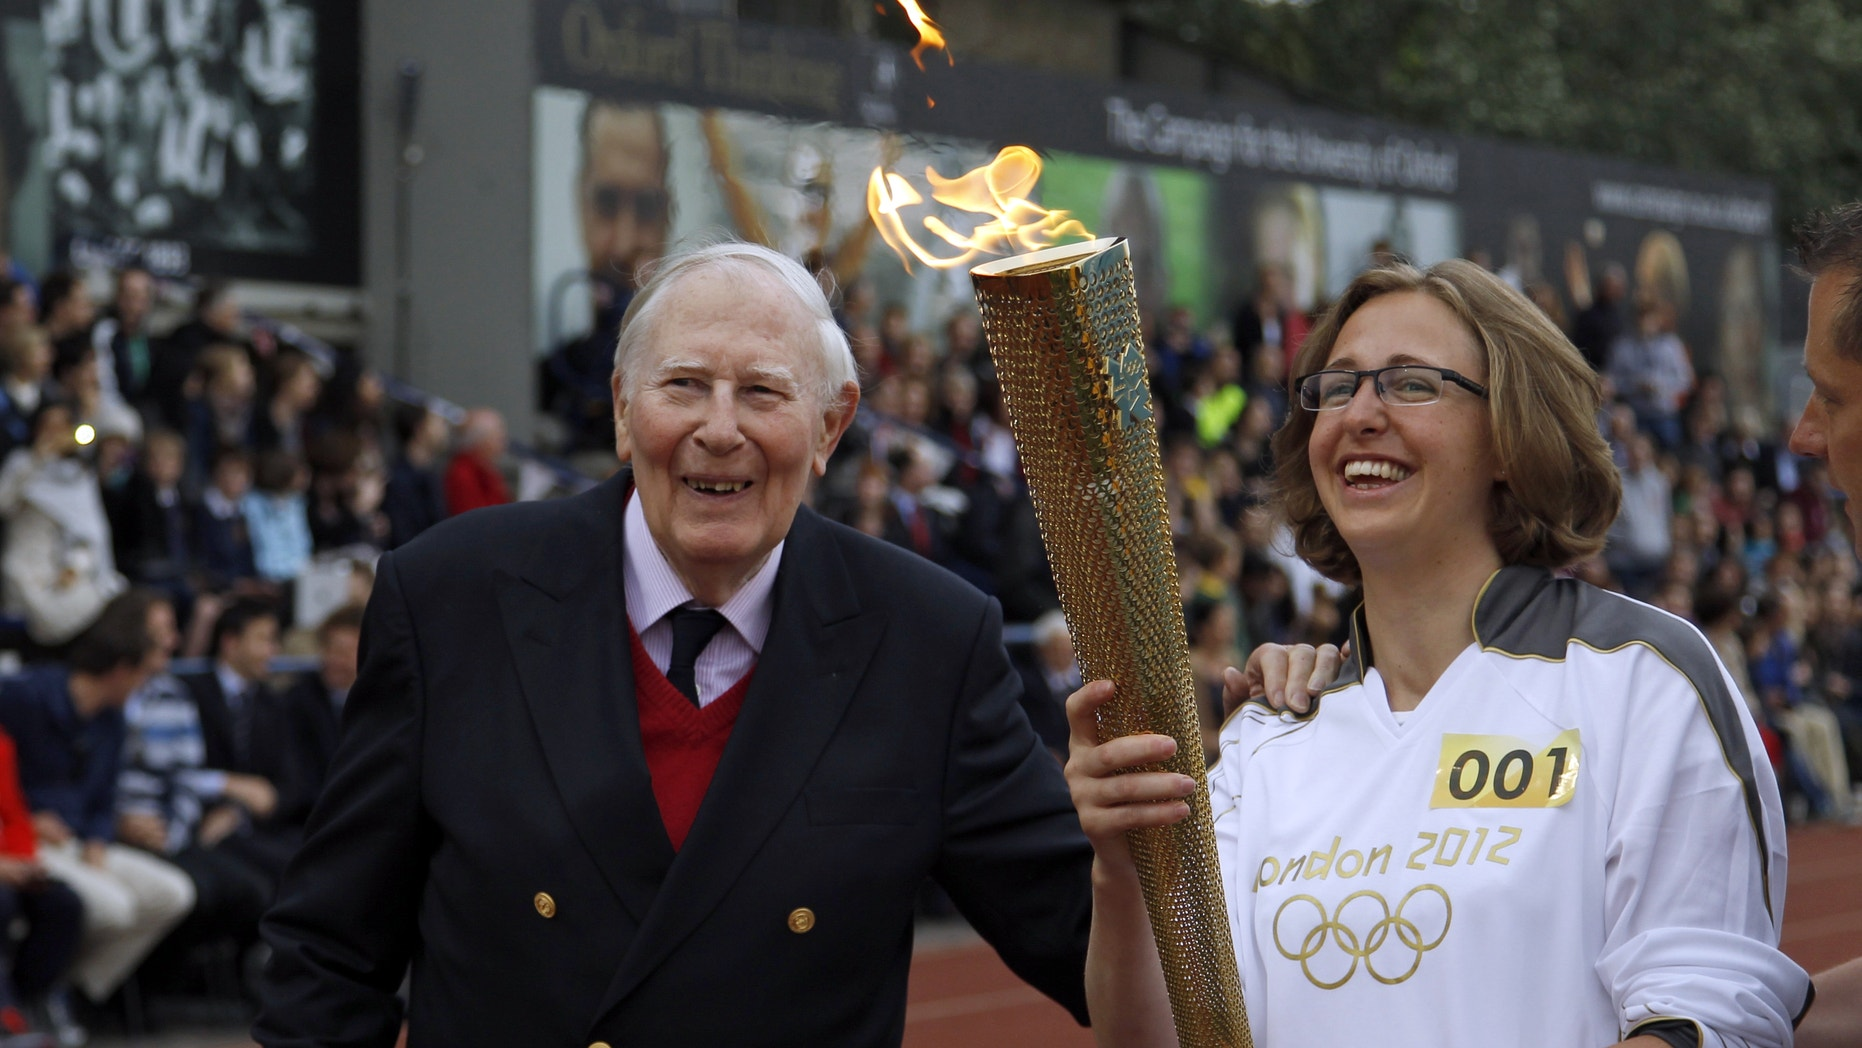 July 10, 2012: The Olympic Flame is passed between Sir Roger Bannister and Oxford doctoral student Nicola Byrom on the running track at Iffley Road Stadium in Oxford, England.